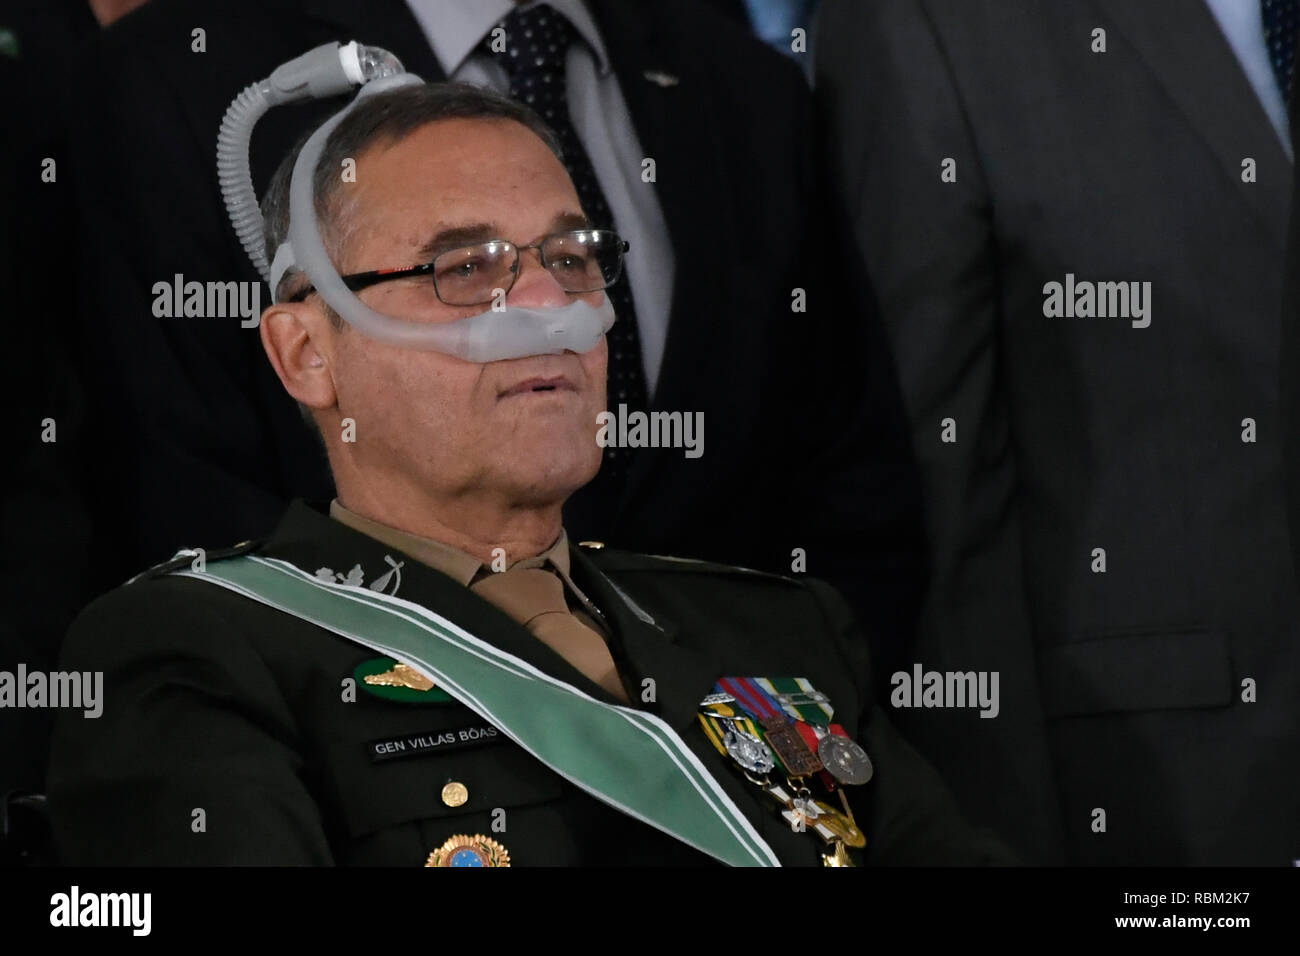 DF - Brasilia - 10/01/2019 - Possession of the commander-in-chief of the Army Eduardo Dias da Costa Villas Boas this Friday, January 11, during a solemnity of passage of the general command of the army of the Army General Eduardo Dias da Costa Villas Boas to the General of Army Edson Leal Pujol in a ceremony held at the Army Club. Photo: Mateus Bonomi / AGIF - Stock Image